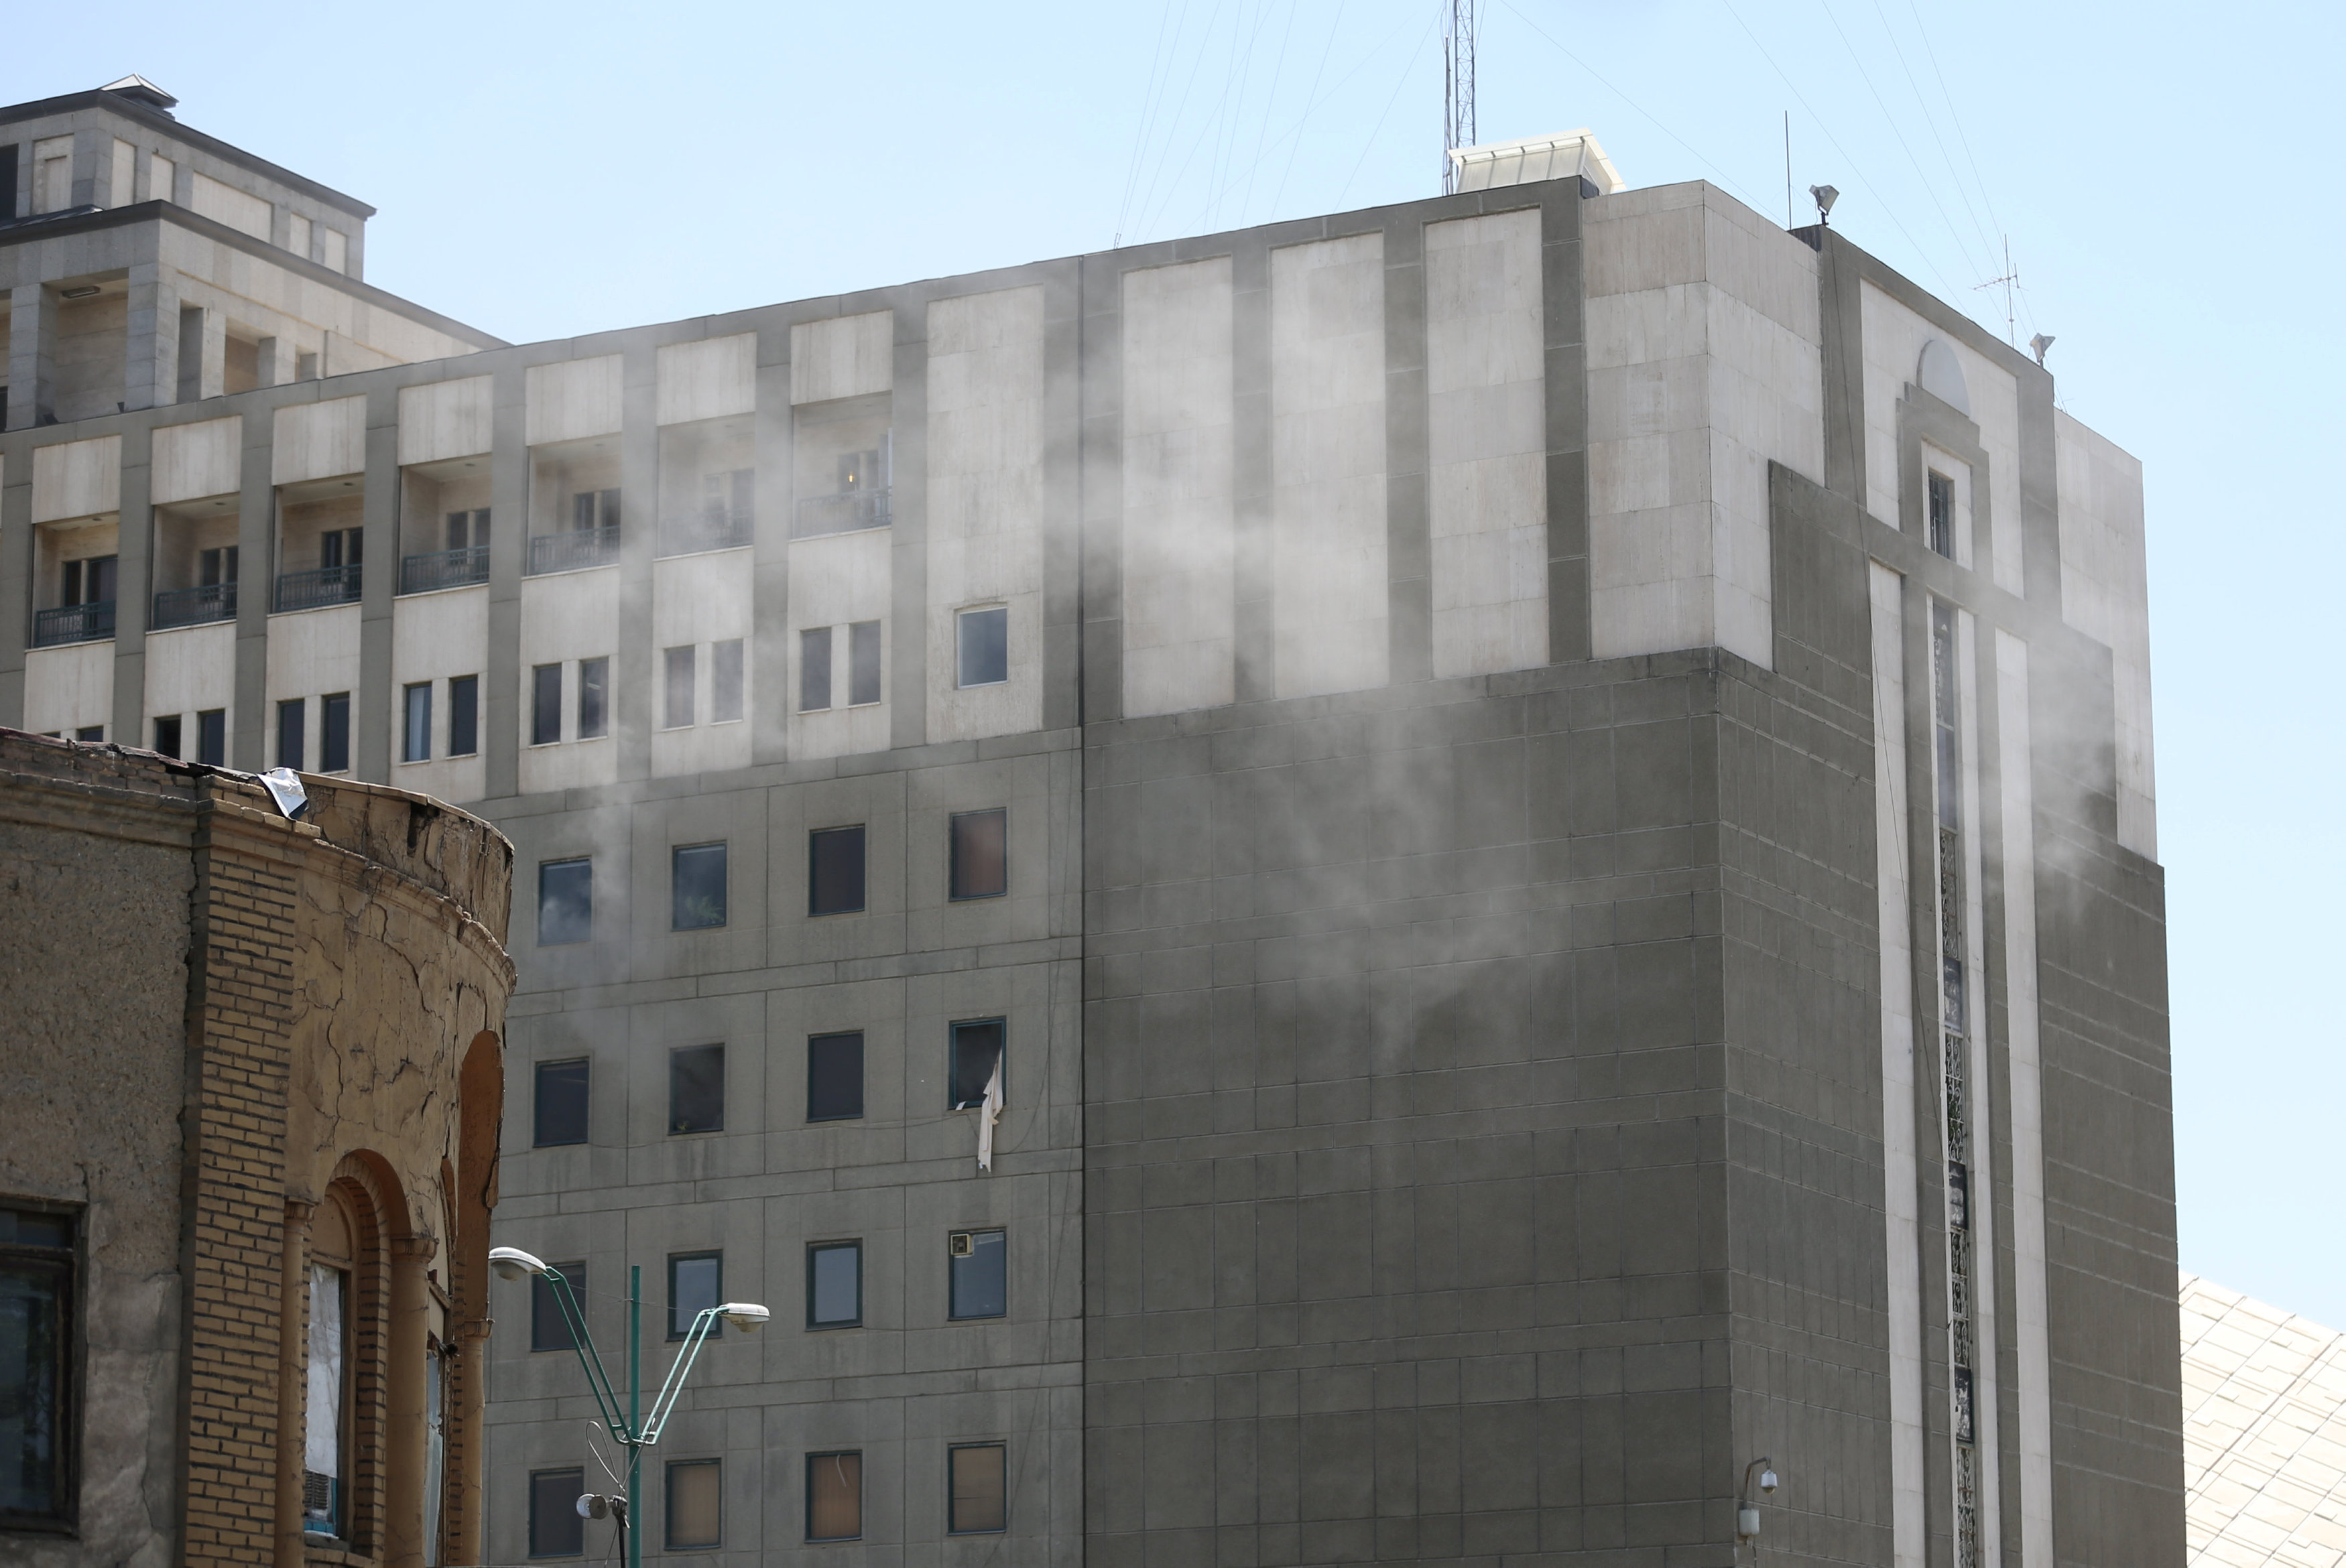 Smoke is seen during an attack on the Iranian parliament in central Tehran, Iran, June 7, 2017. Omid Vahabzadeh/TIMA via REUTERS ATTENTION EDITORS - THIS IMAGE WAS PROVIDED BY A THIRD PARTY. FOR EDITORIAL USE ONLY.